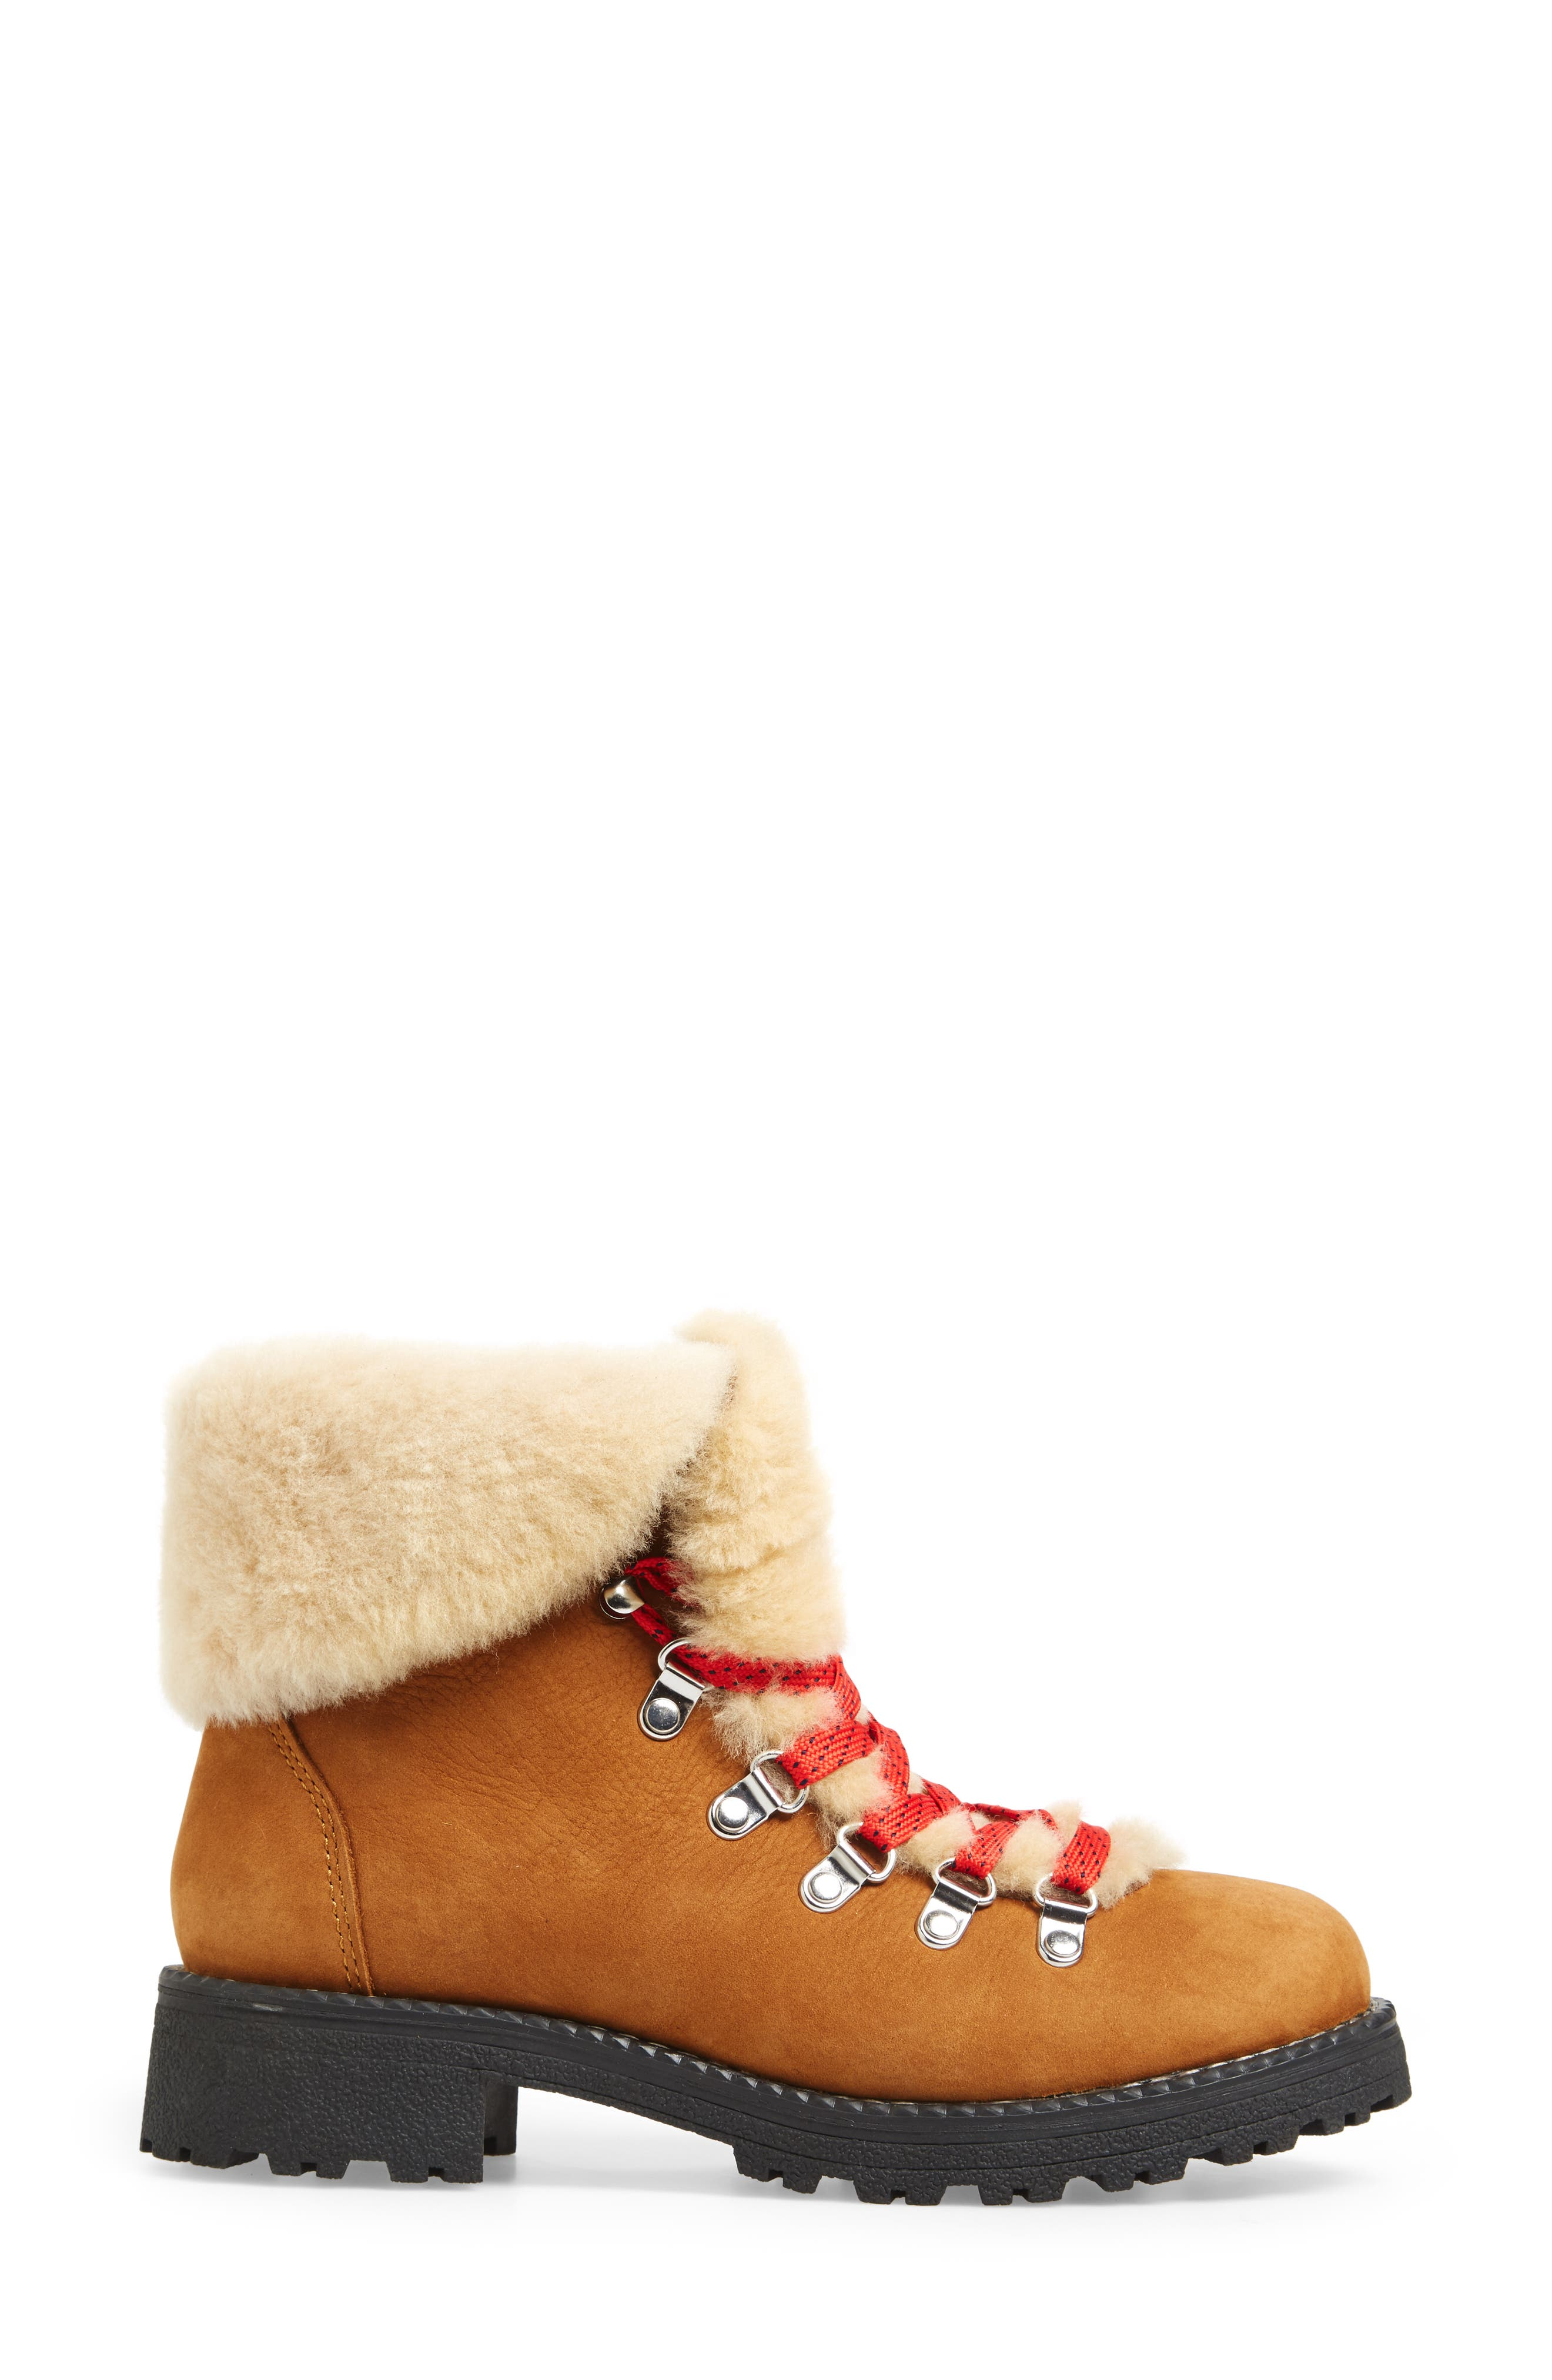 Alternate Image 3  - J.Crew Nordic Genuine Shearling Cuff Winter Boot (Women)